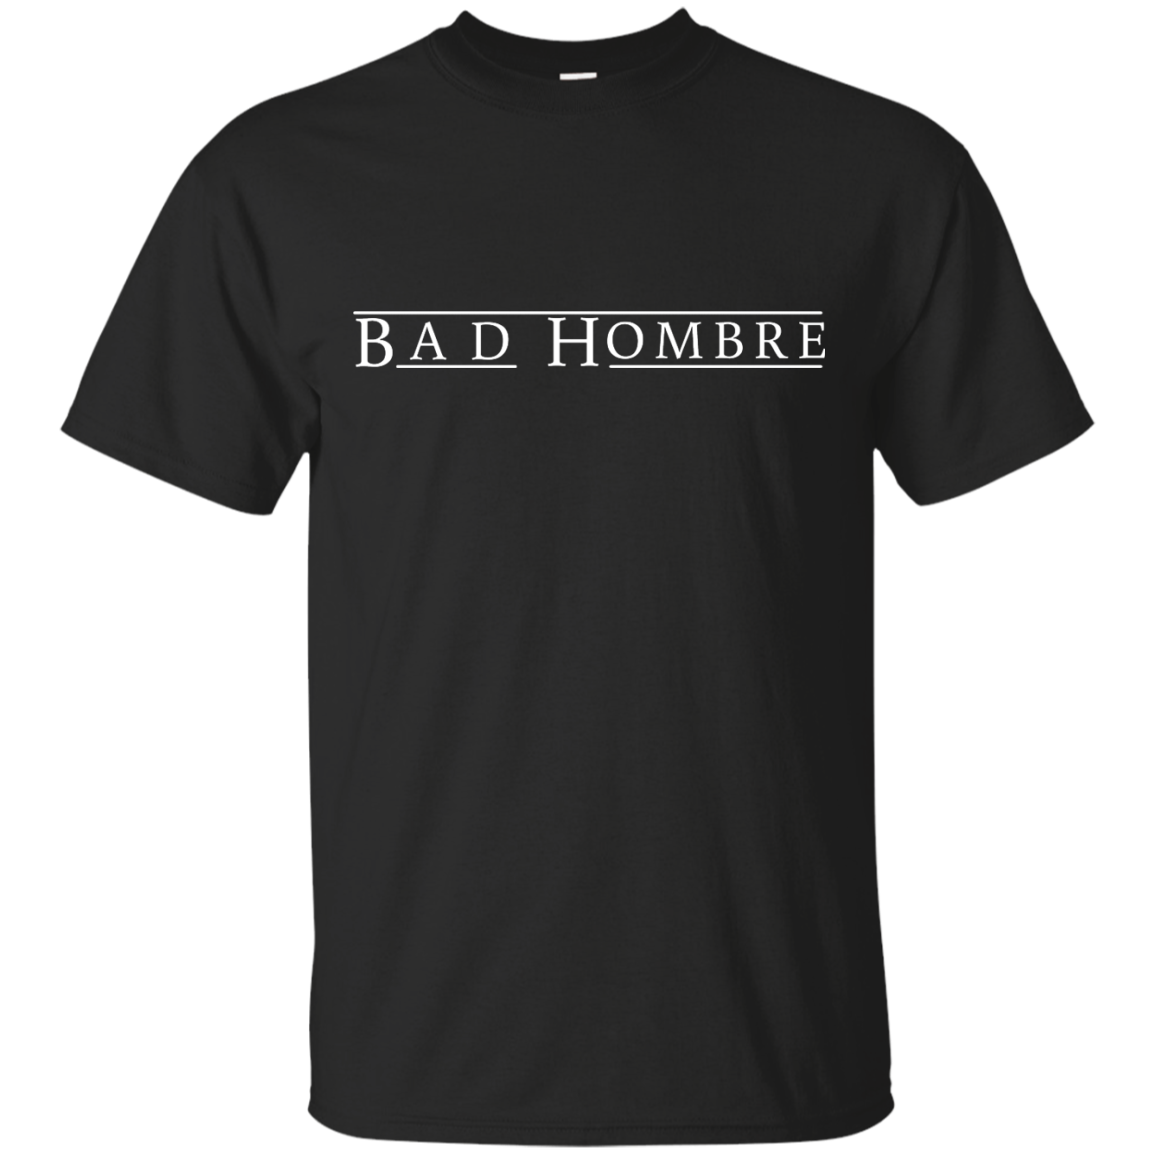 Bad Hombre Shirt Hillary Clinton and Trump Debate